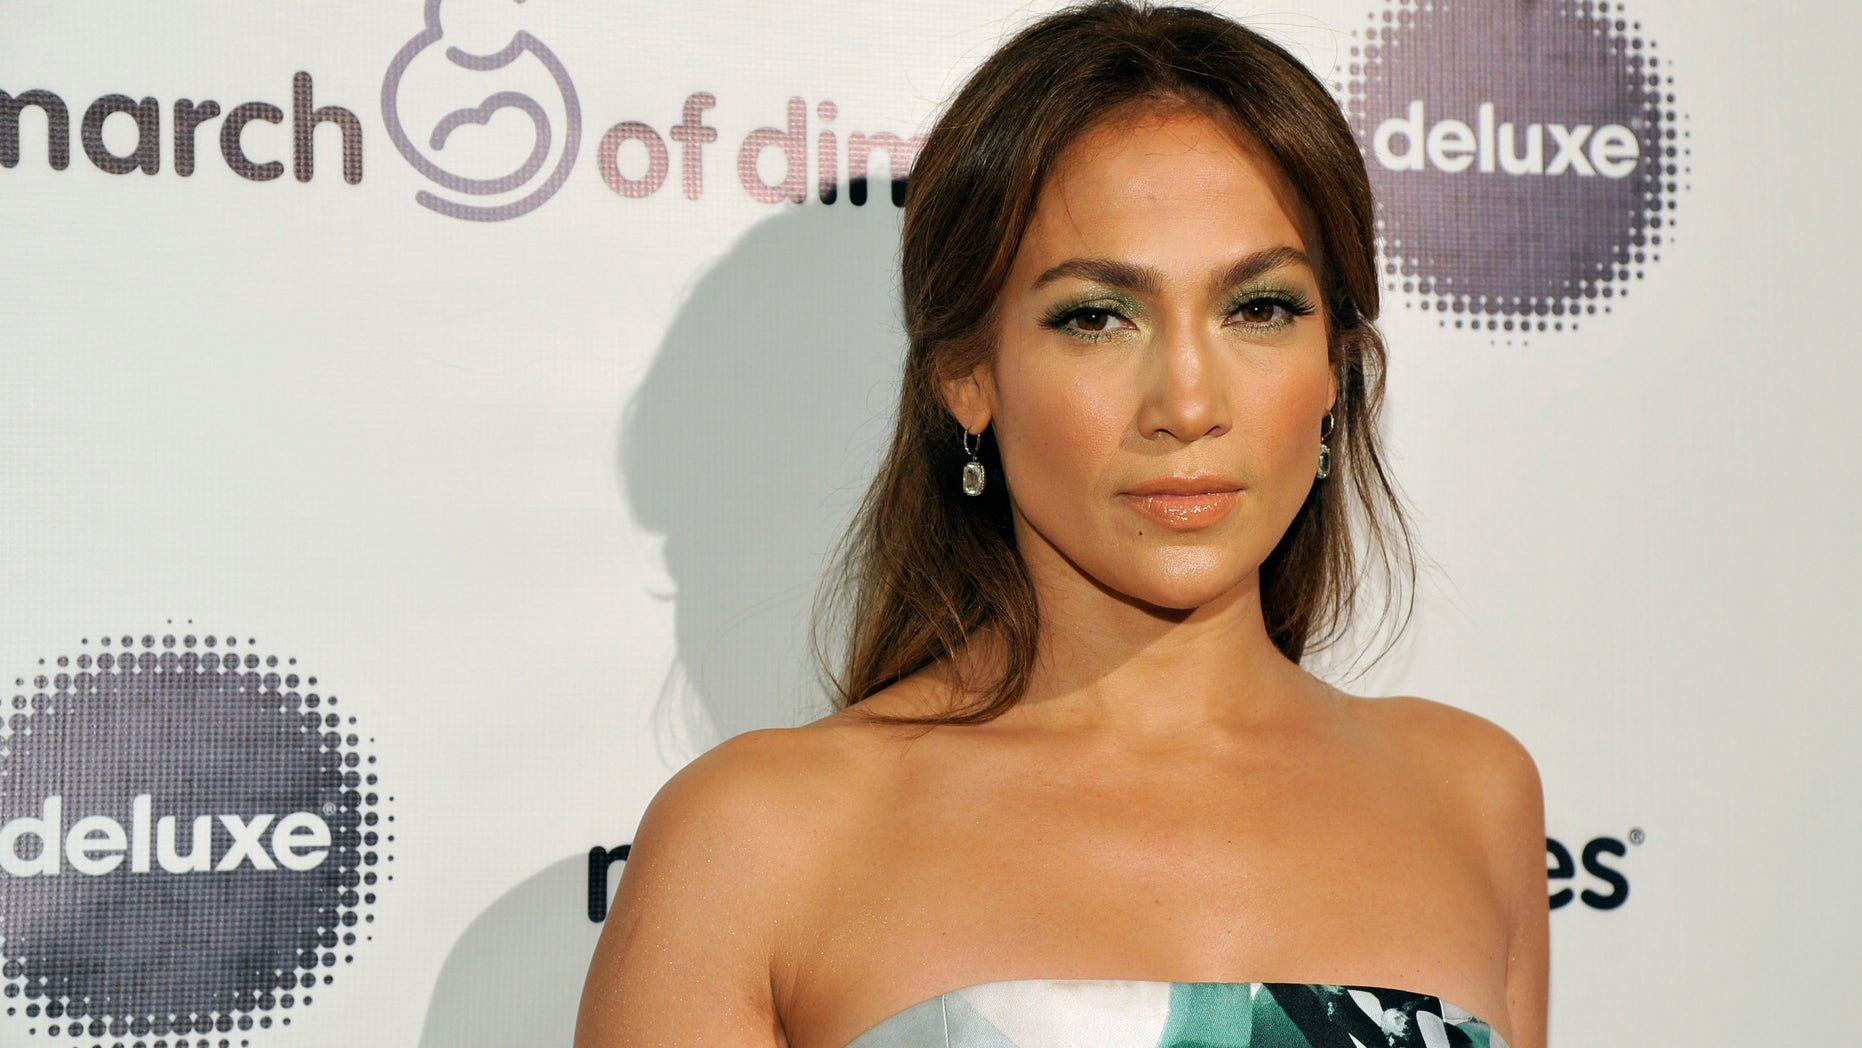 BEVERLY HILLS, CA - DECEMBER 06:  Actress/Singer Jennifer Lopez attends the March of Dimes Celebration of Babies Luncheon at Beverly Hills Hotel on December 6, 2013 in Beverly Hills, California.  (Photo by John Sciulli/Getty Images for March of Dimes)